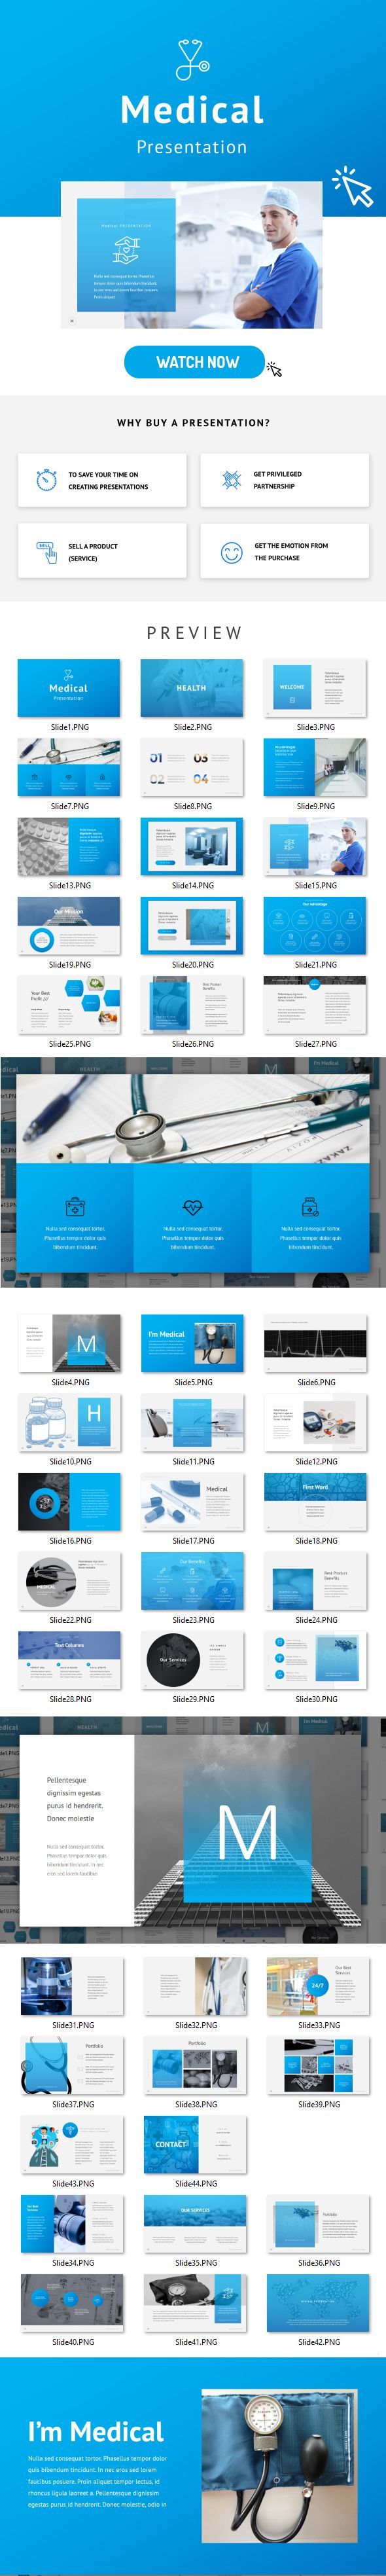 Medical powerpoint template presentation templates medical medical powerpoint template toneelgroepblik Images